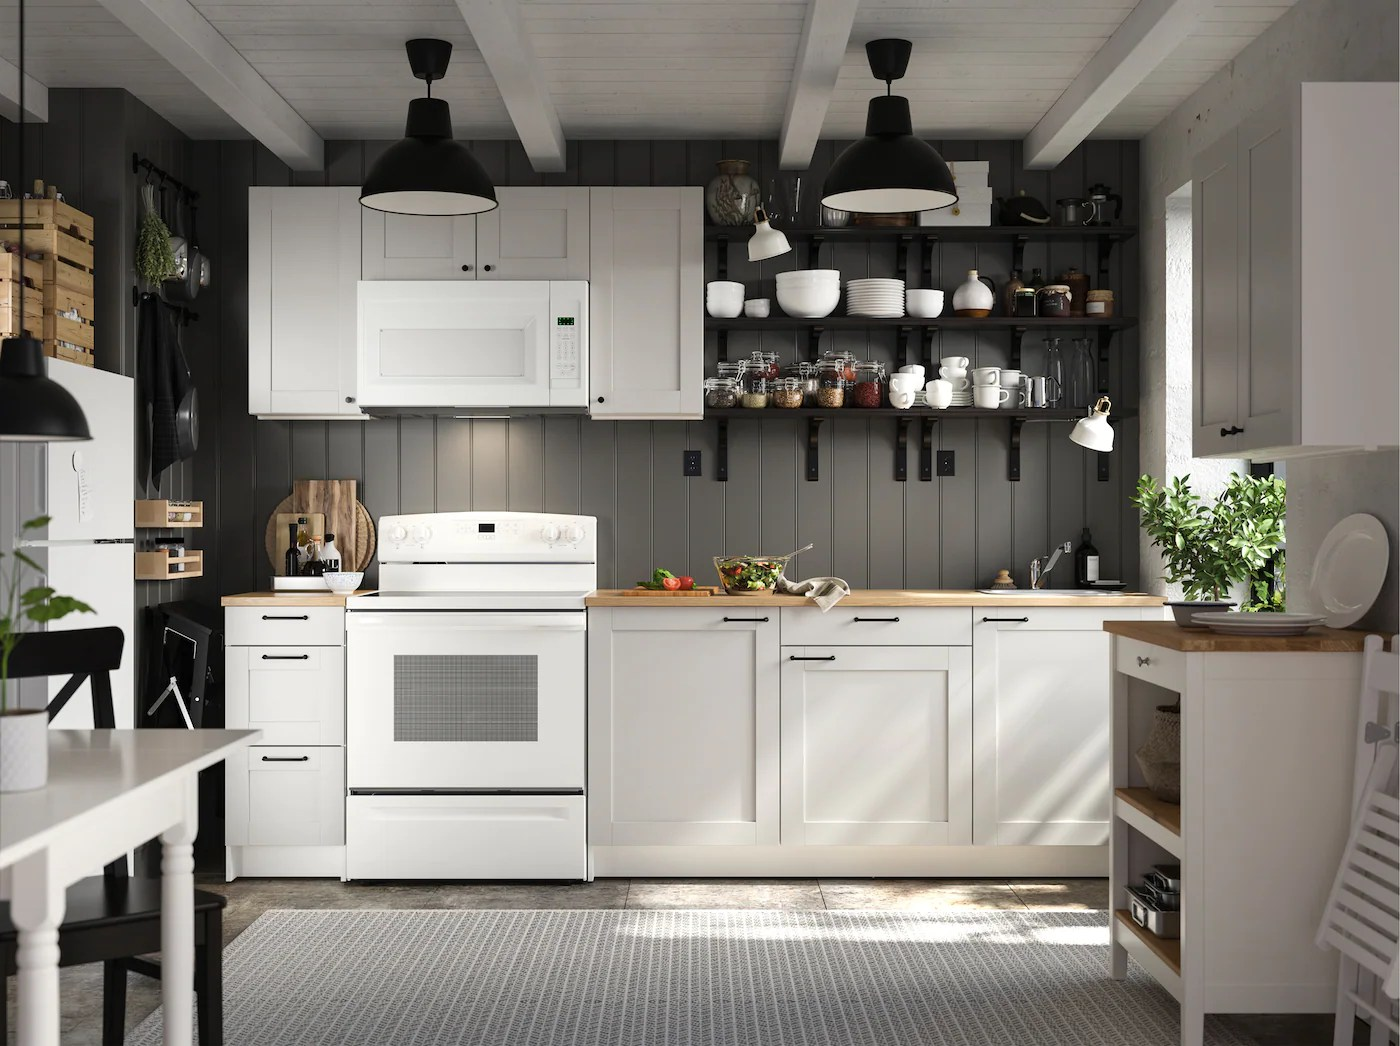 A personal and convenient KNOXHULT kitchen   IKEA